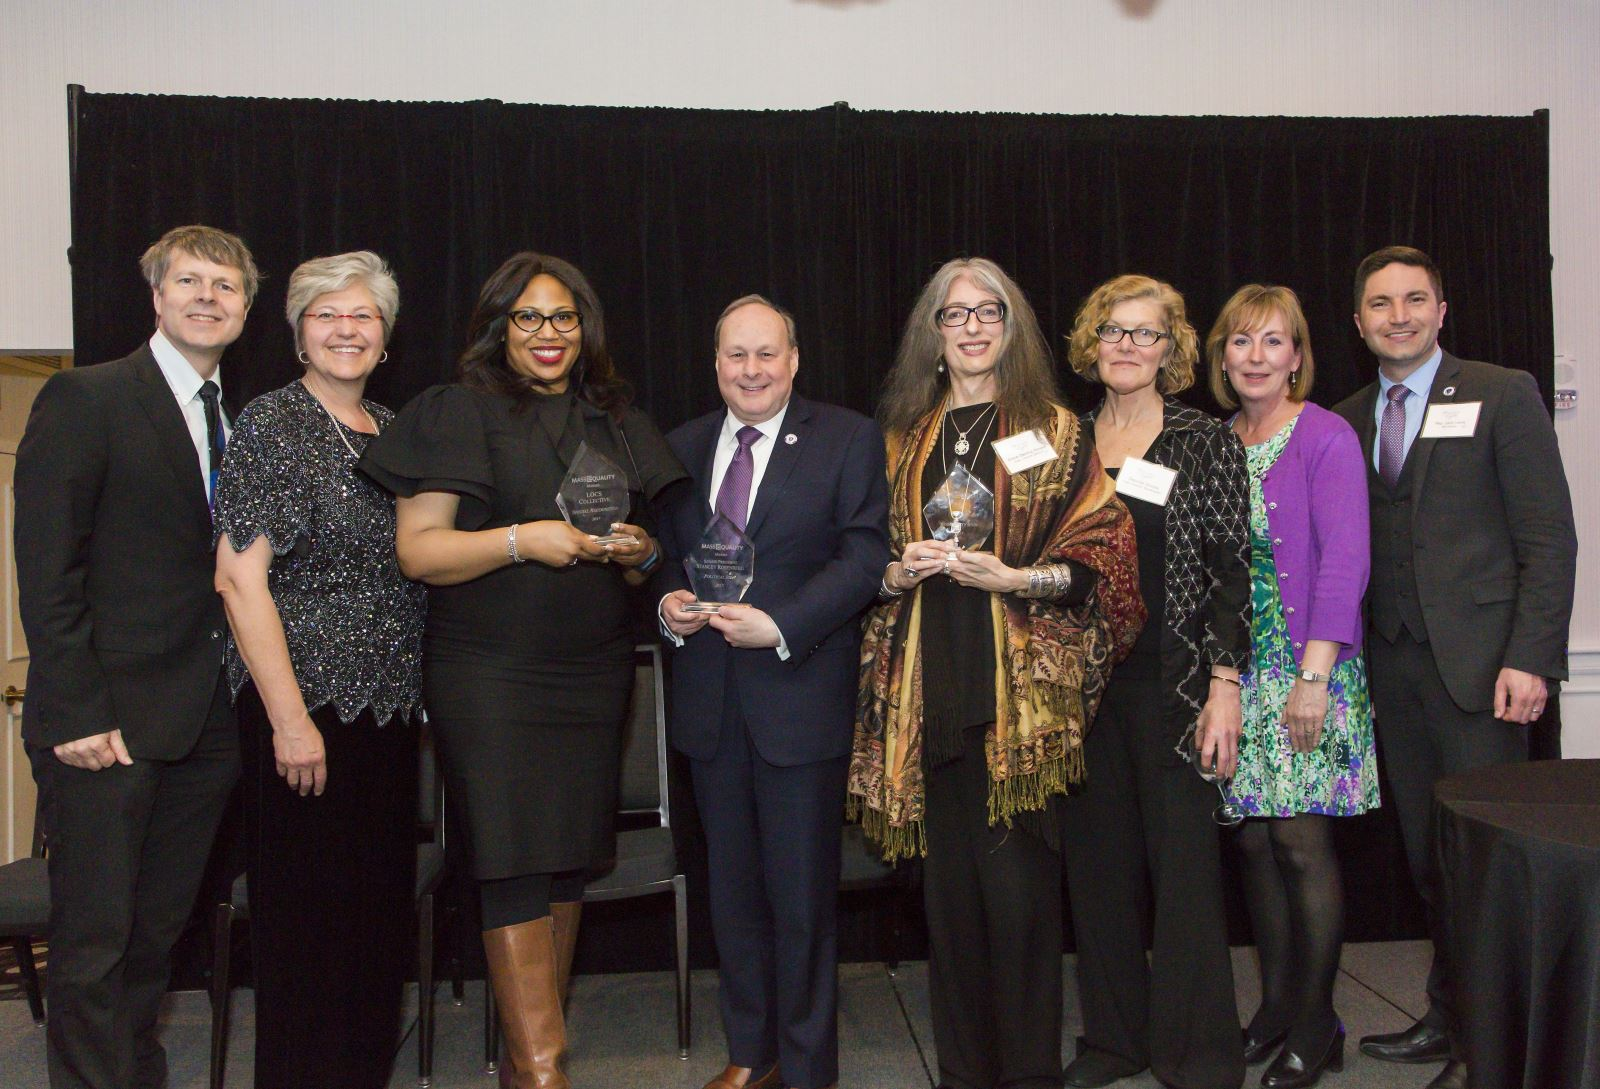 The 2017 Icon Award winners stand with legislators and MassEquality officers